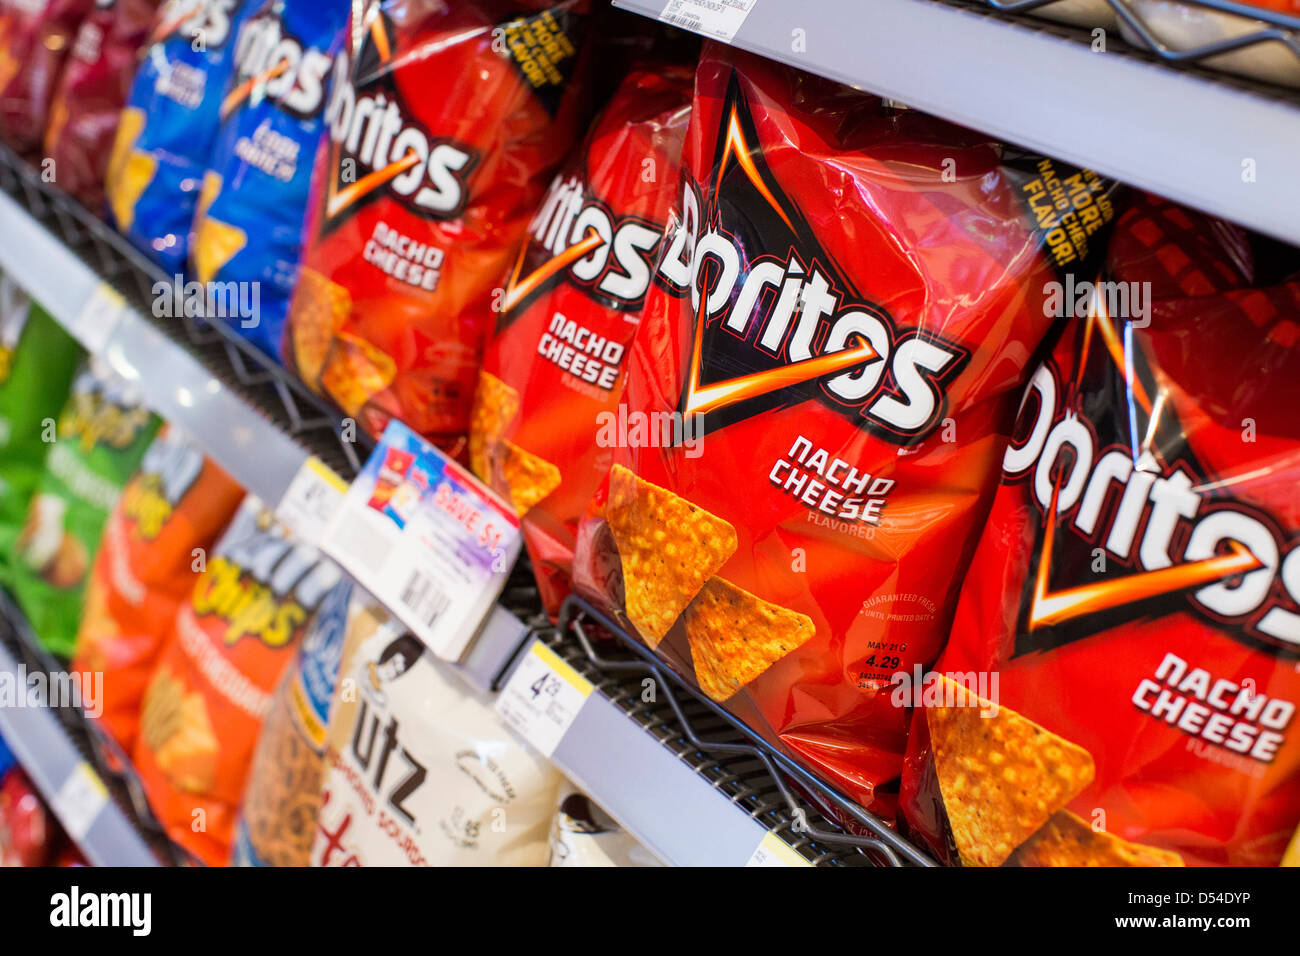 potato chips grocery stock photos potato chips grocery stock lay s utz and doritos potato chips on display at a walgreens flagship store